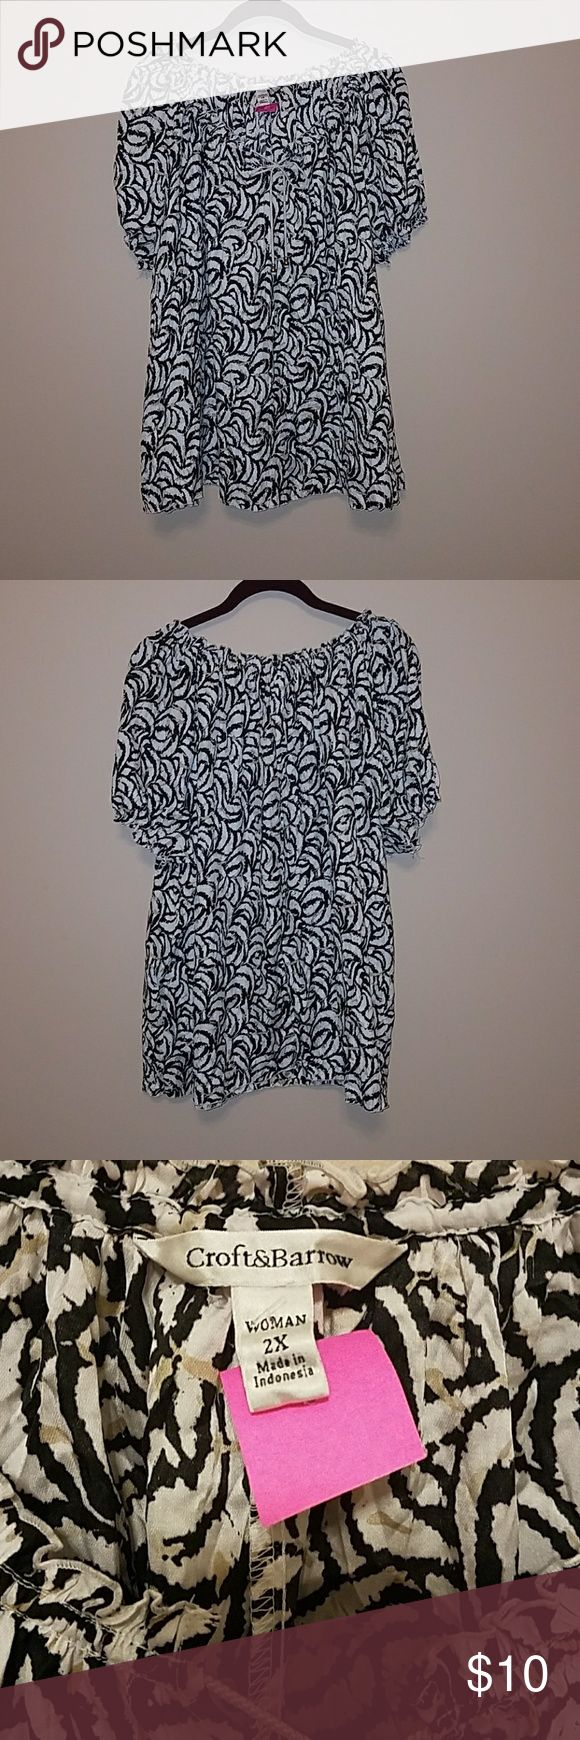 CROFT & BARROW Ladies Short Sleeve Blouse Size 2X Short Sleeve tie neck gathered blouse by Croft & Barrow.  Cute black and white pattern with touches of gold. Elastic at bottom of the sleeve. Great condition! Size 2X. croft & barrow Tops Blouses